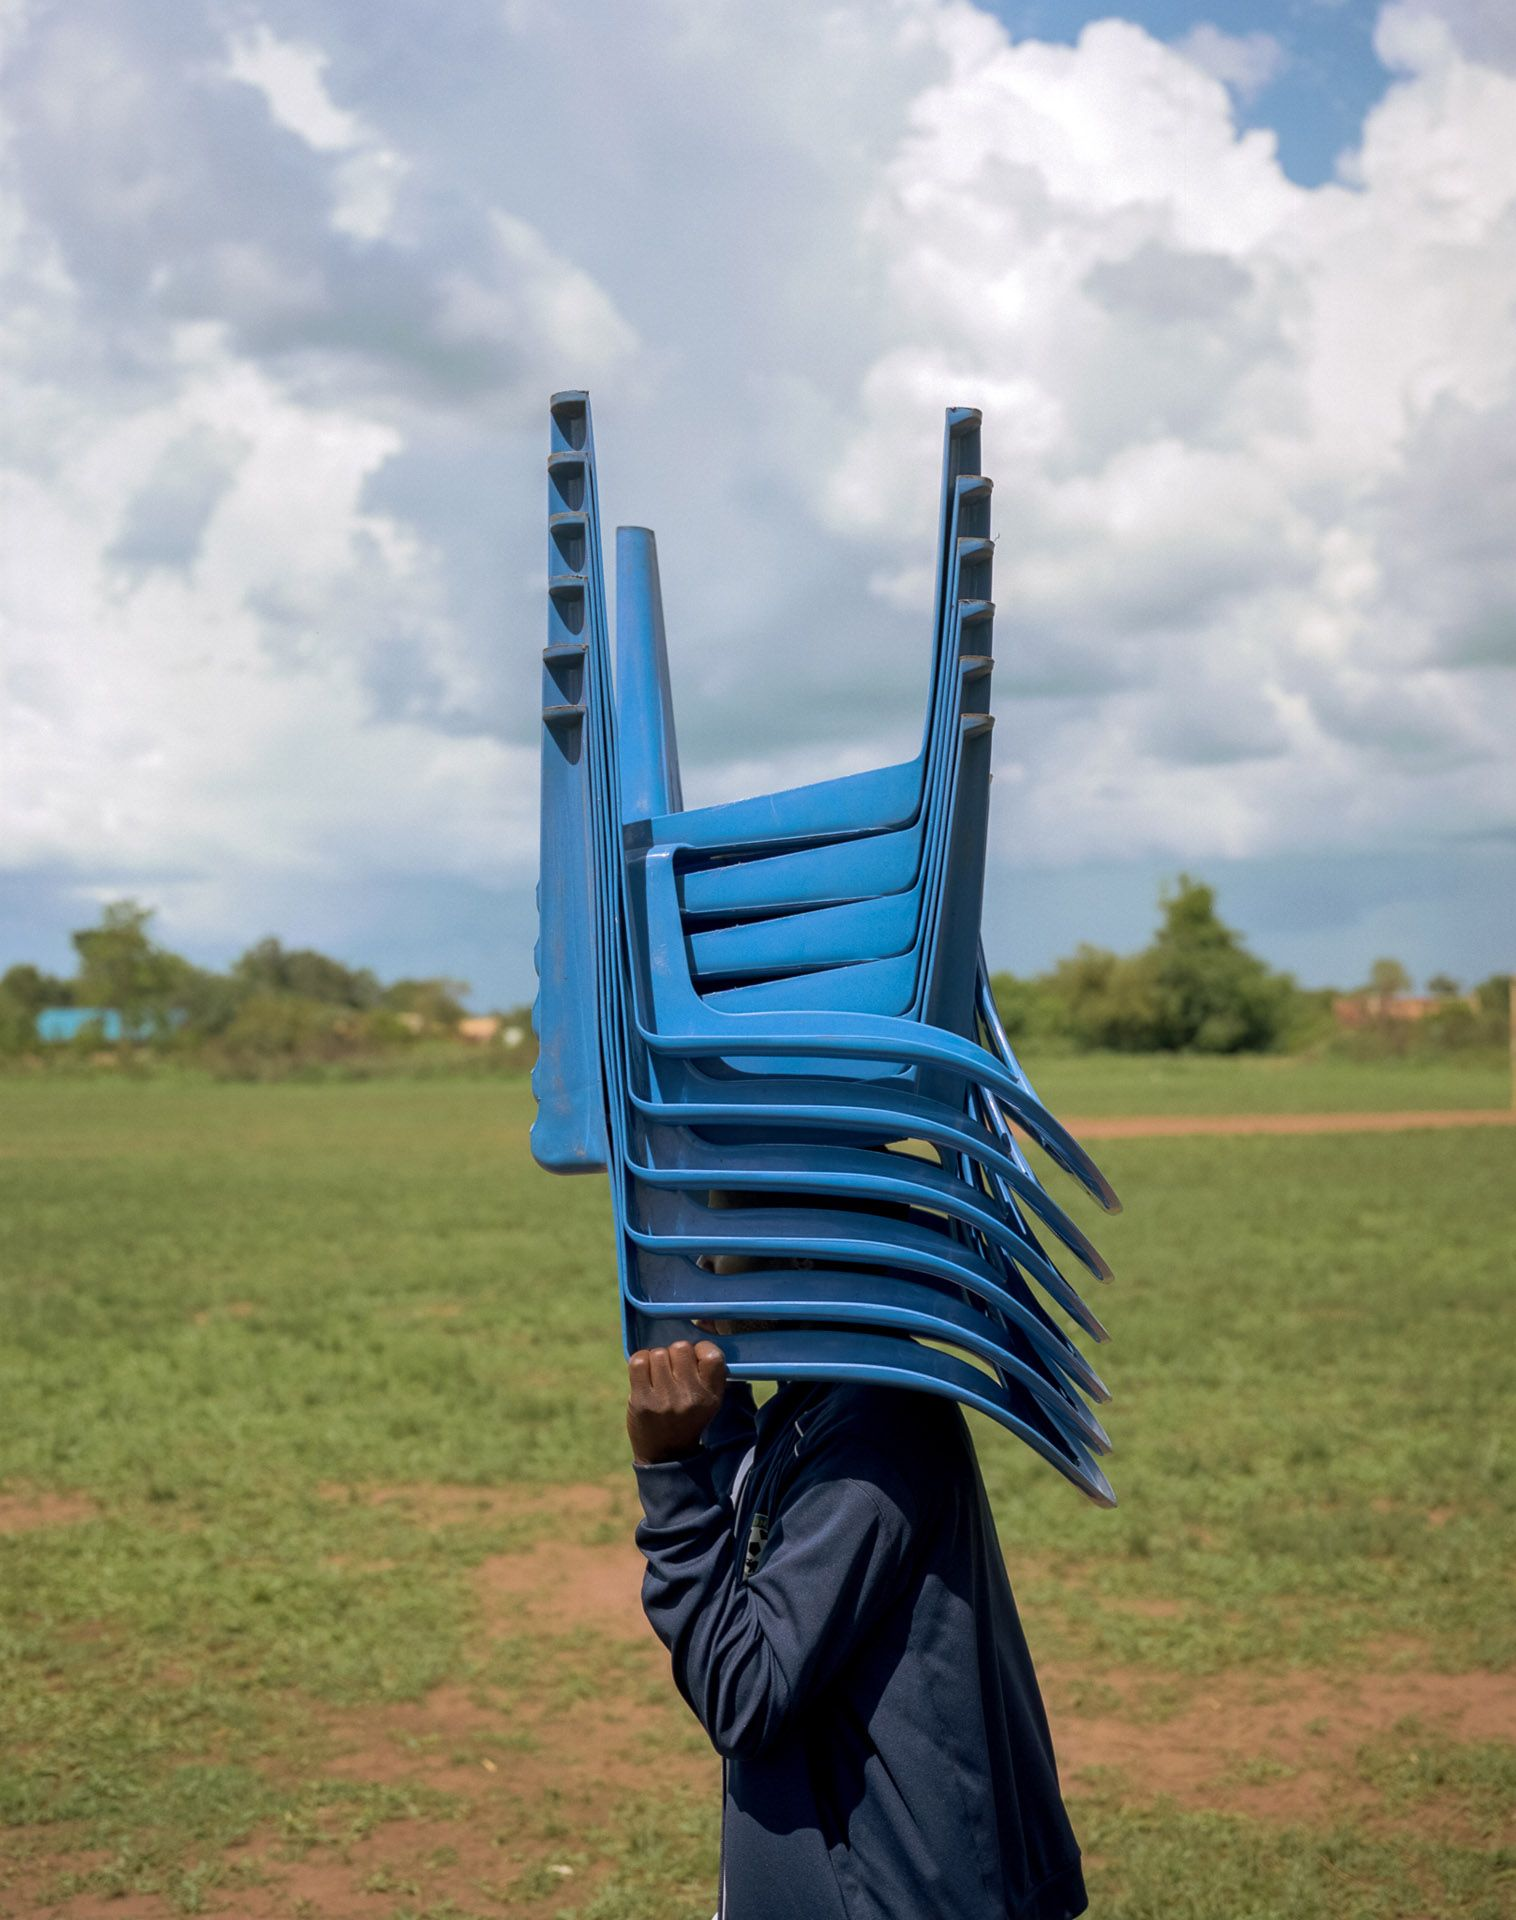 young black boy transporting a pile of blue plastic chairs upside down on his head by Alexi Hobbs in Uganda for Football for good with Sportsnet